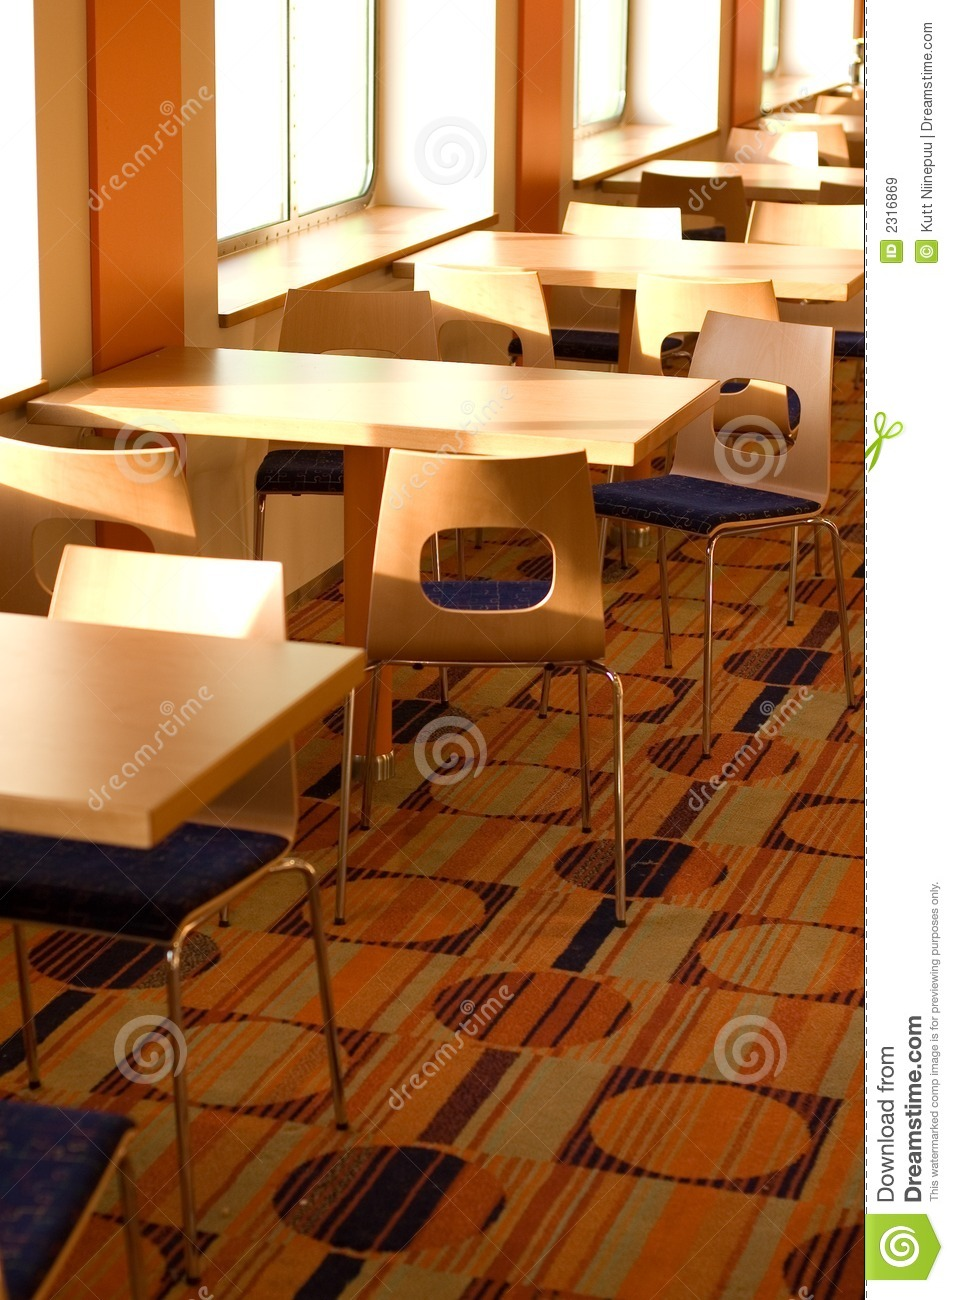 Cafe Table And Chairs Stock Image Image Of Interior Wooden 2316869